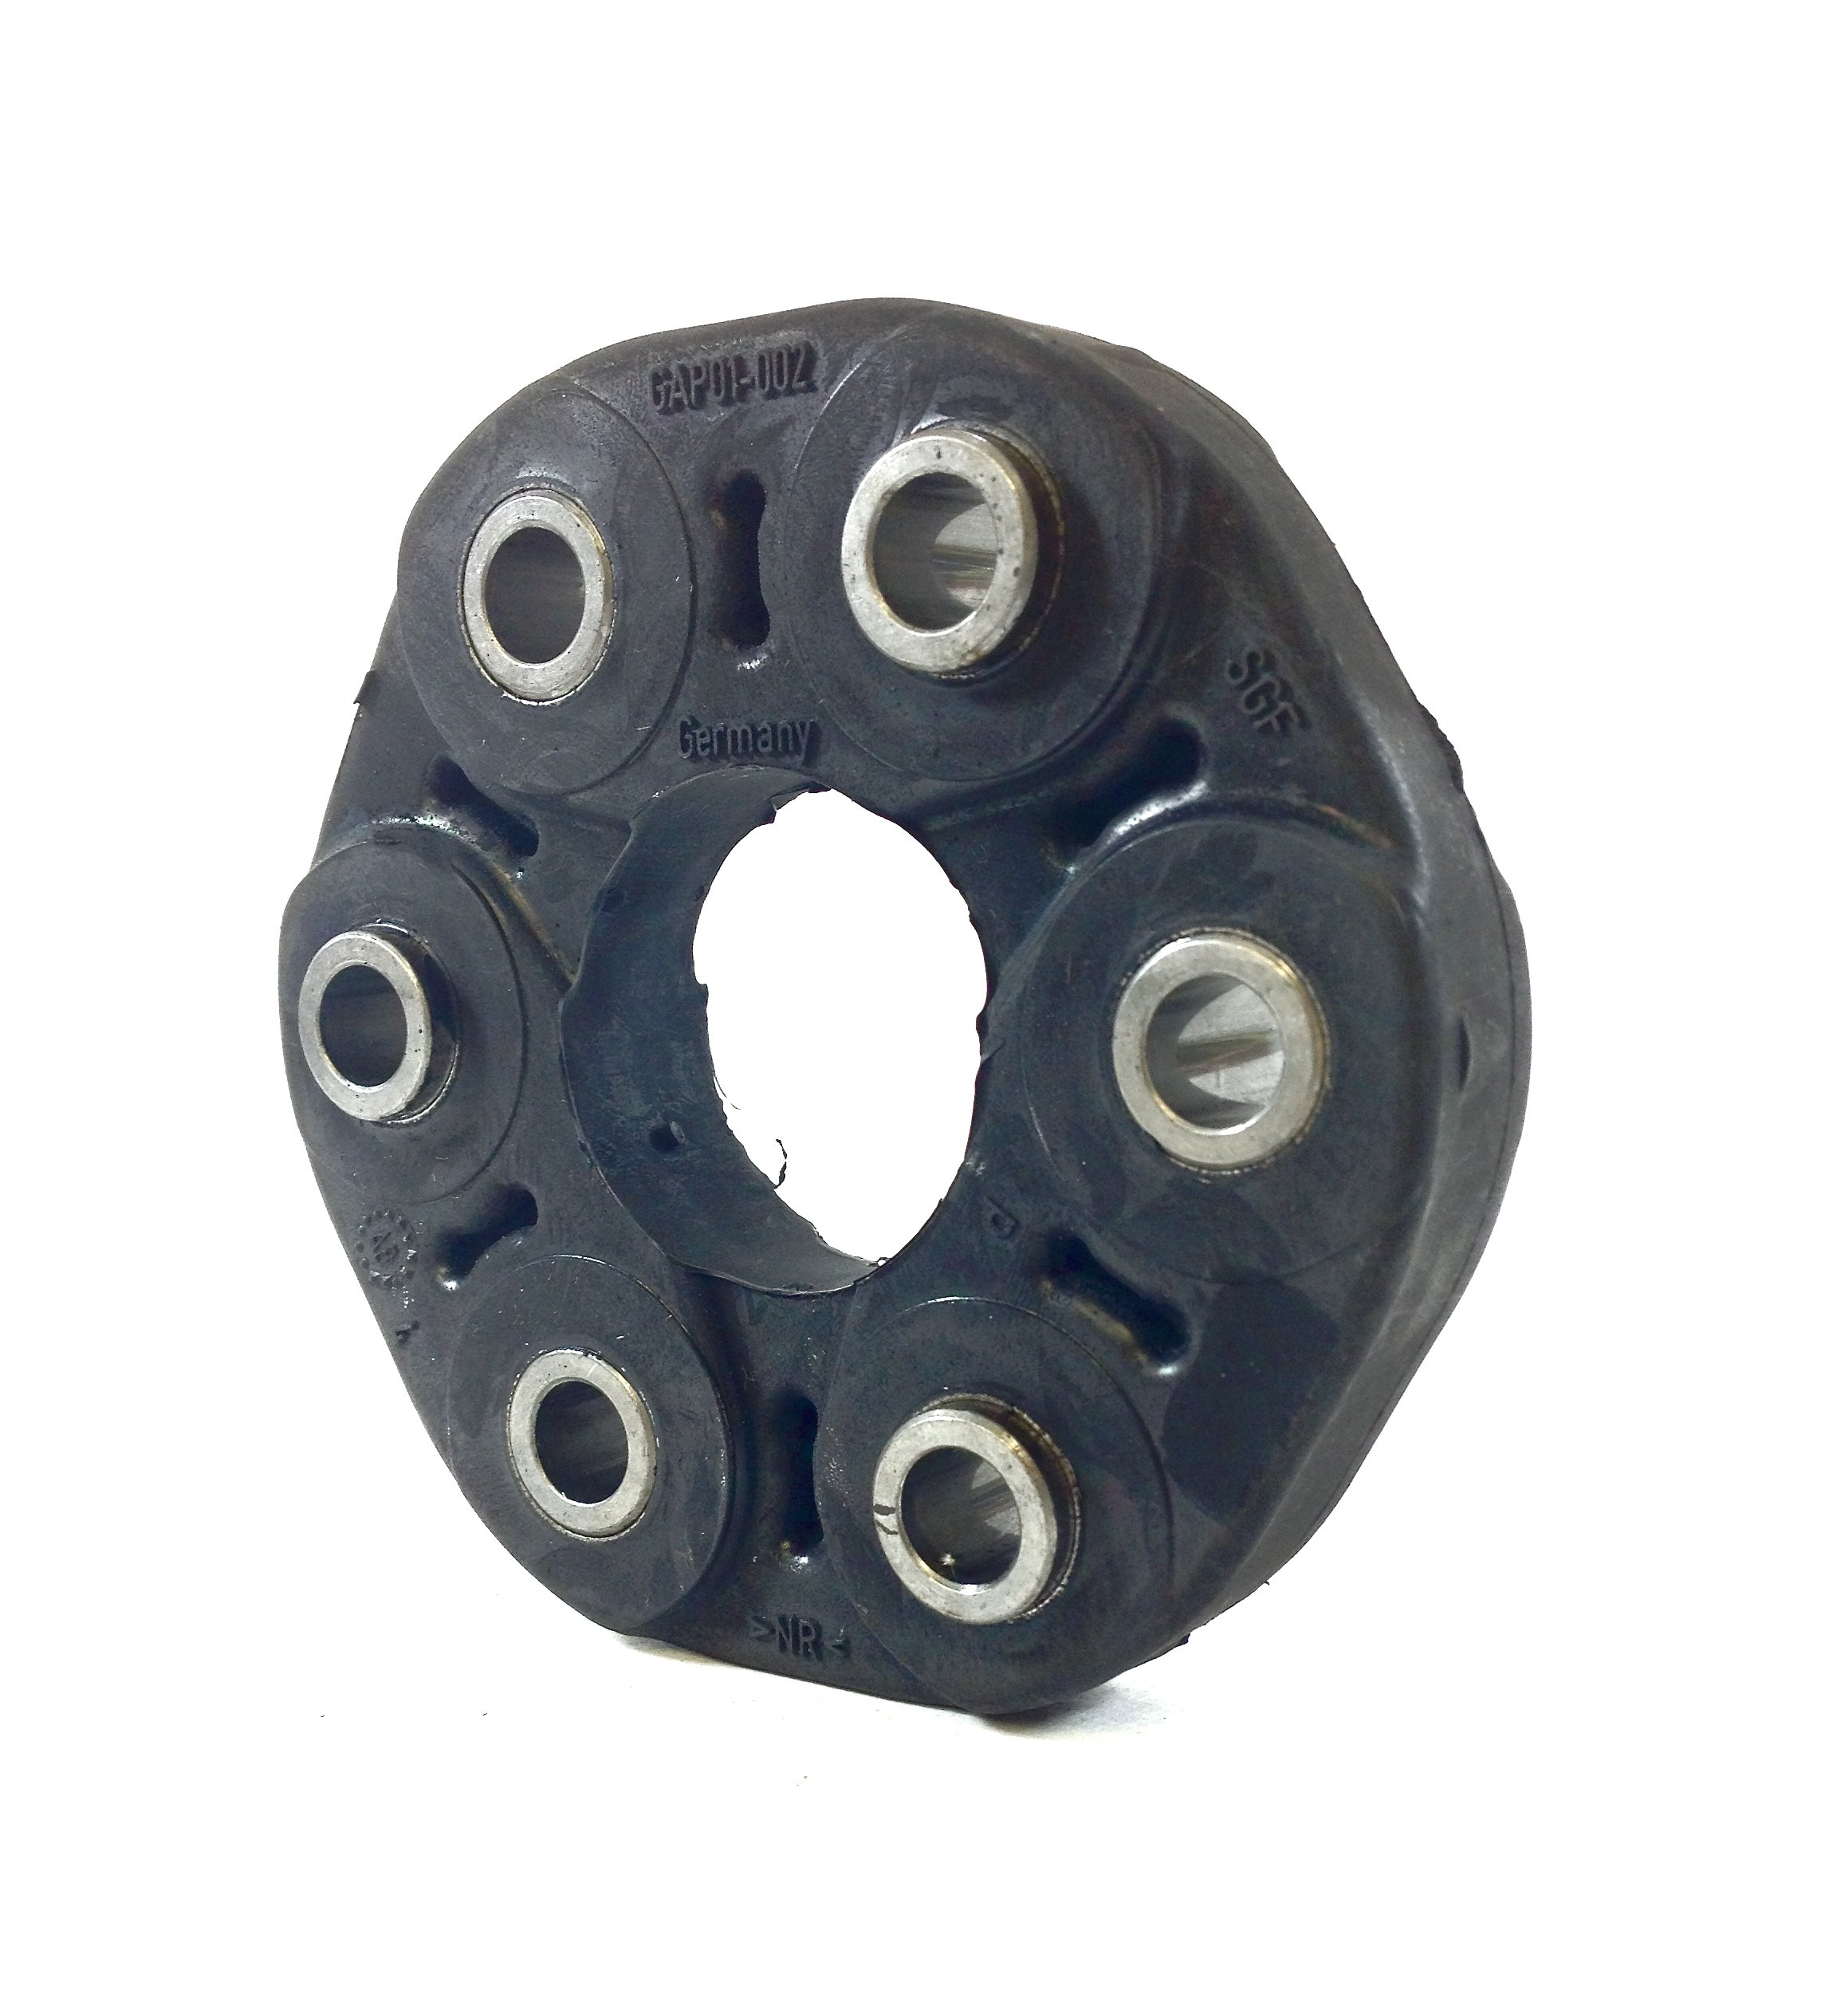 SGF GAP01-002 - OEM German Made Flex Coupler - Bolt Circle 78mm/Bolt Hole 10mm/Bolt Hole Length 23mm